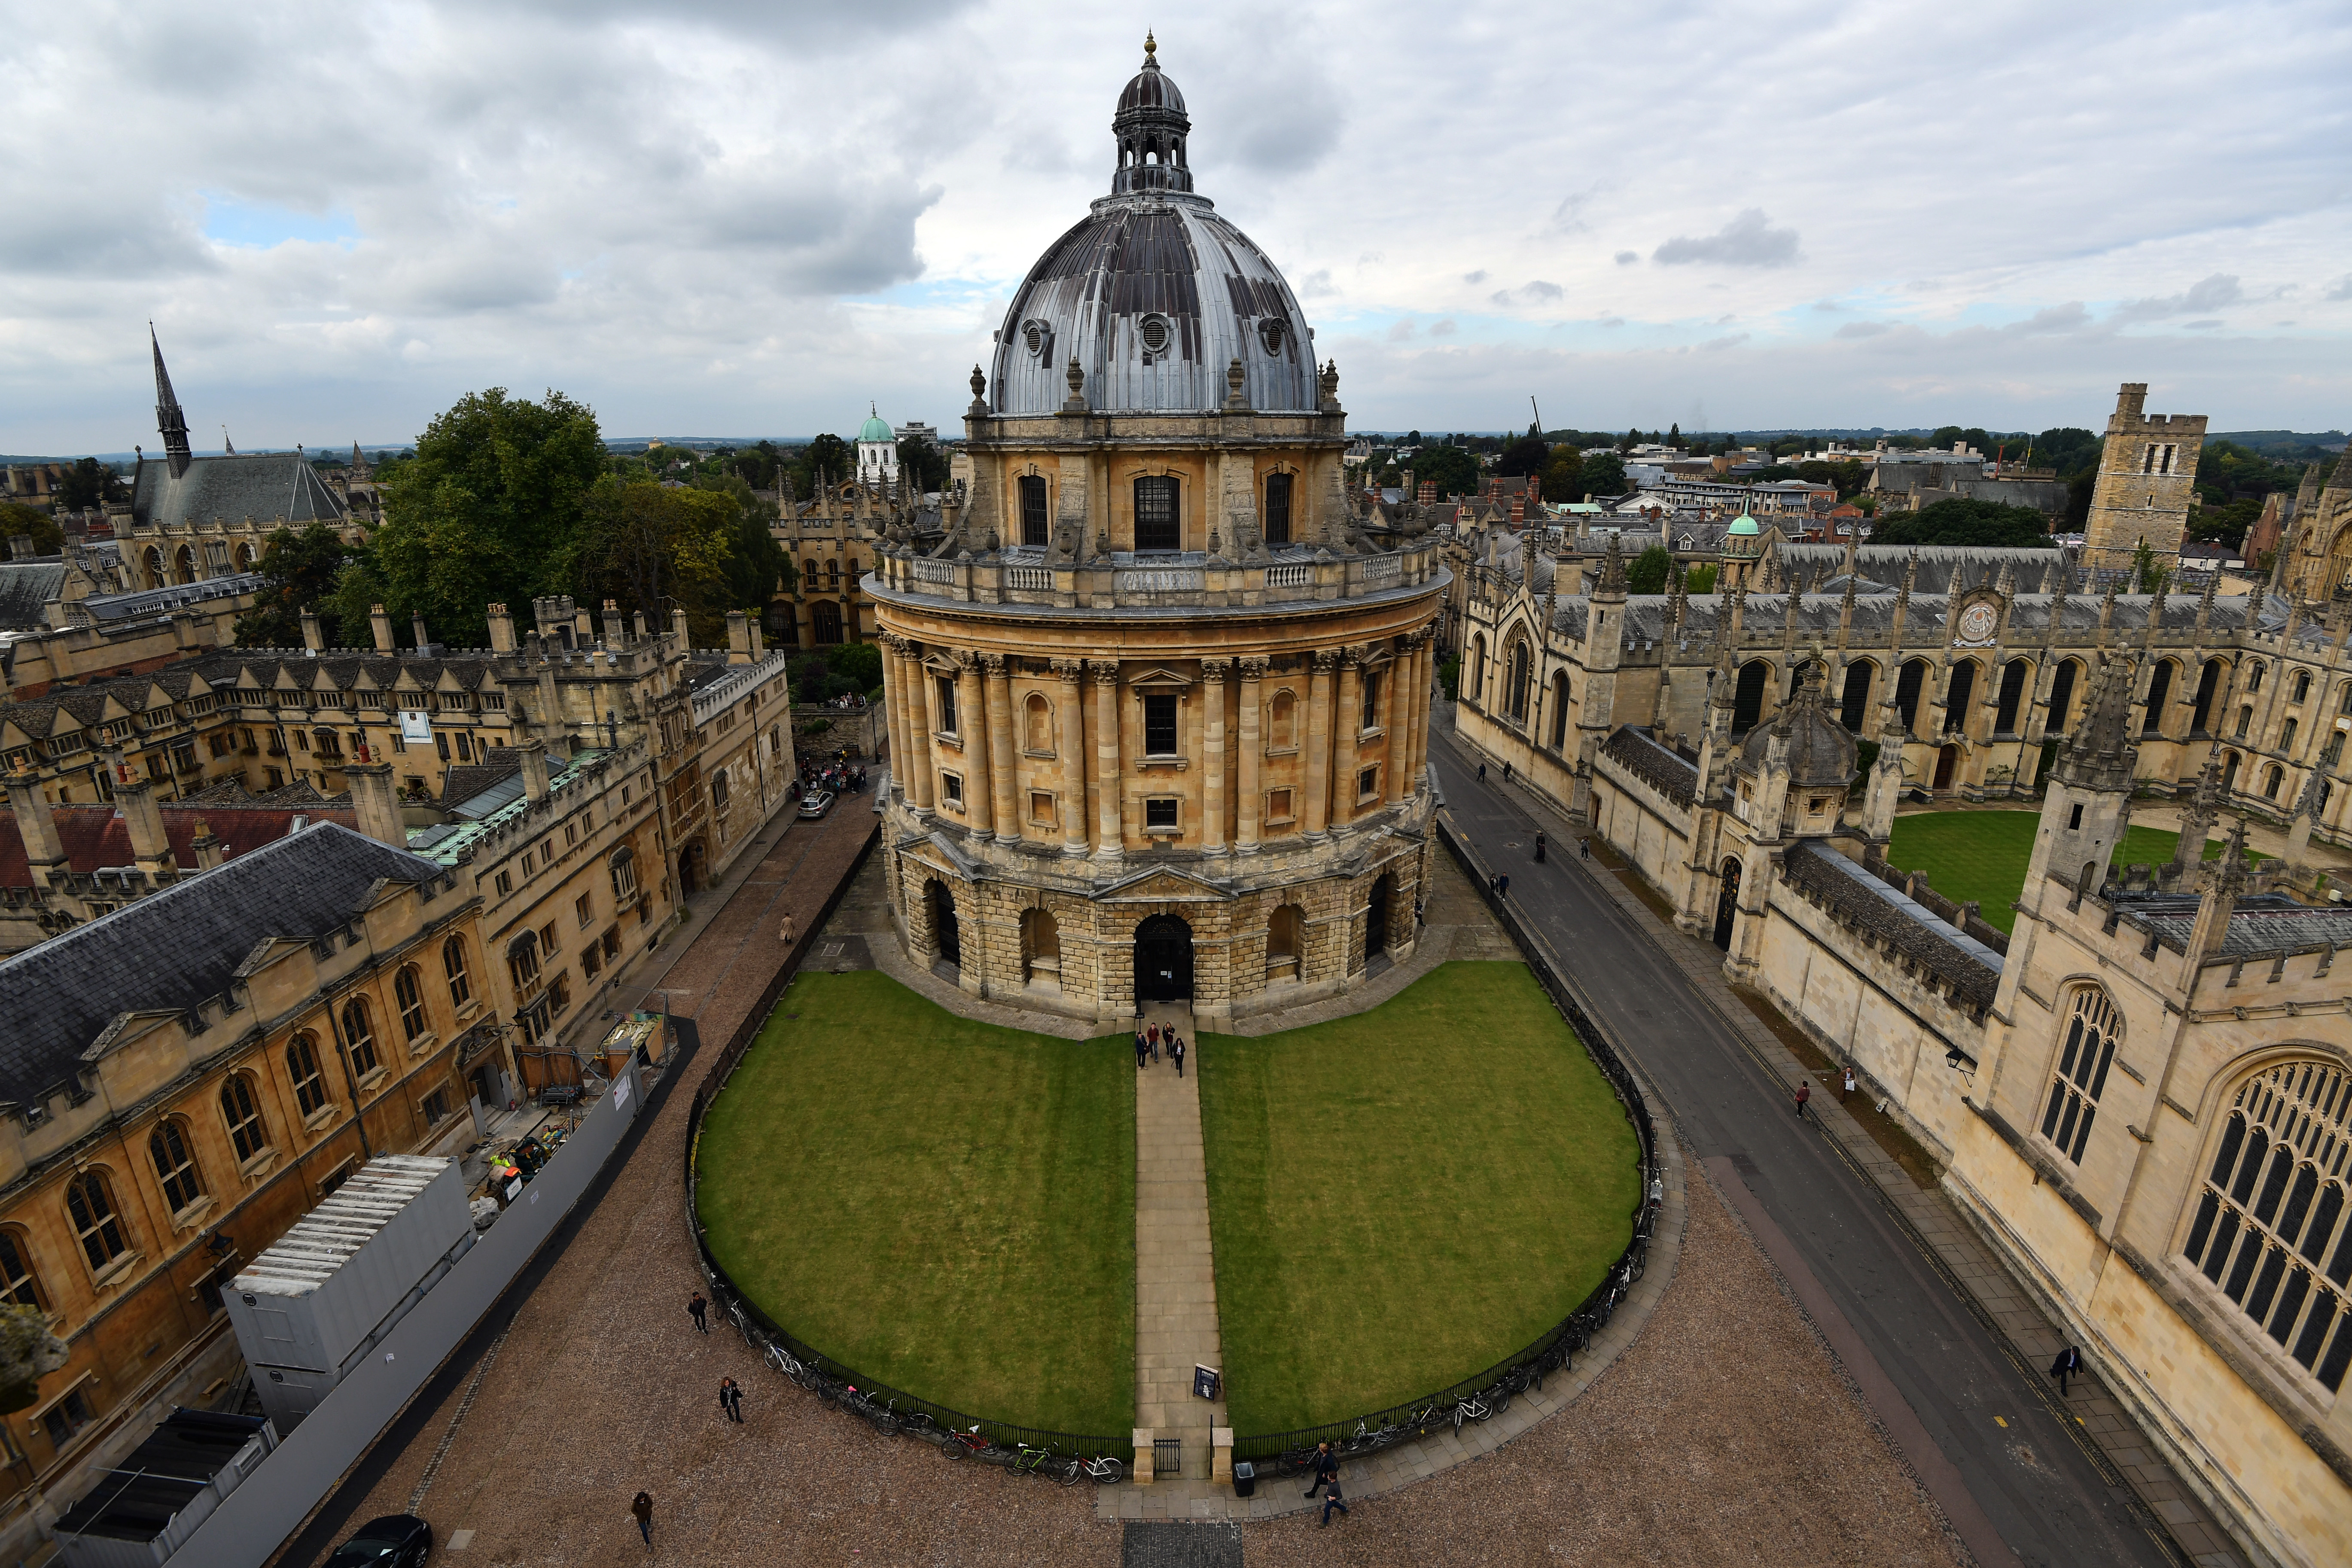 Radcliffe Camera is pictured on September 20, 2016 in Oxford, England.